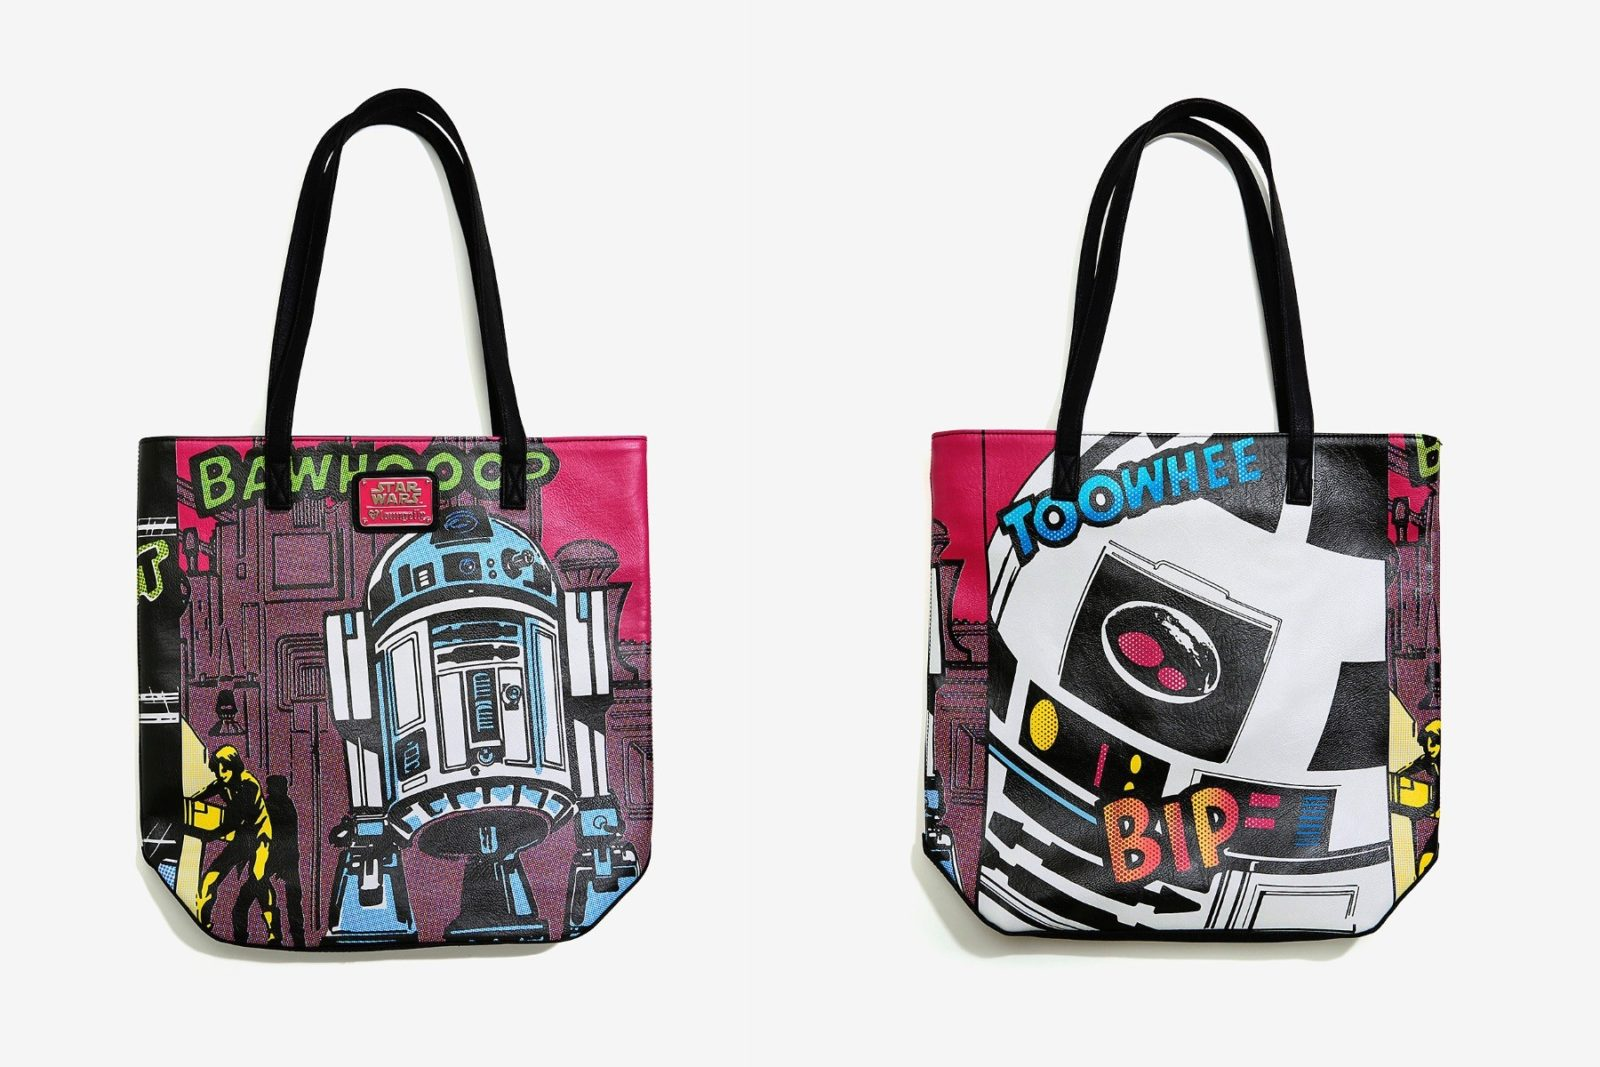 Loungefly R2-D2 comic tote at Box Lunch